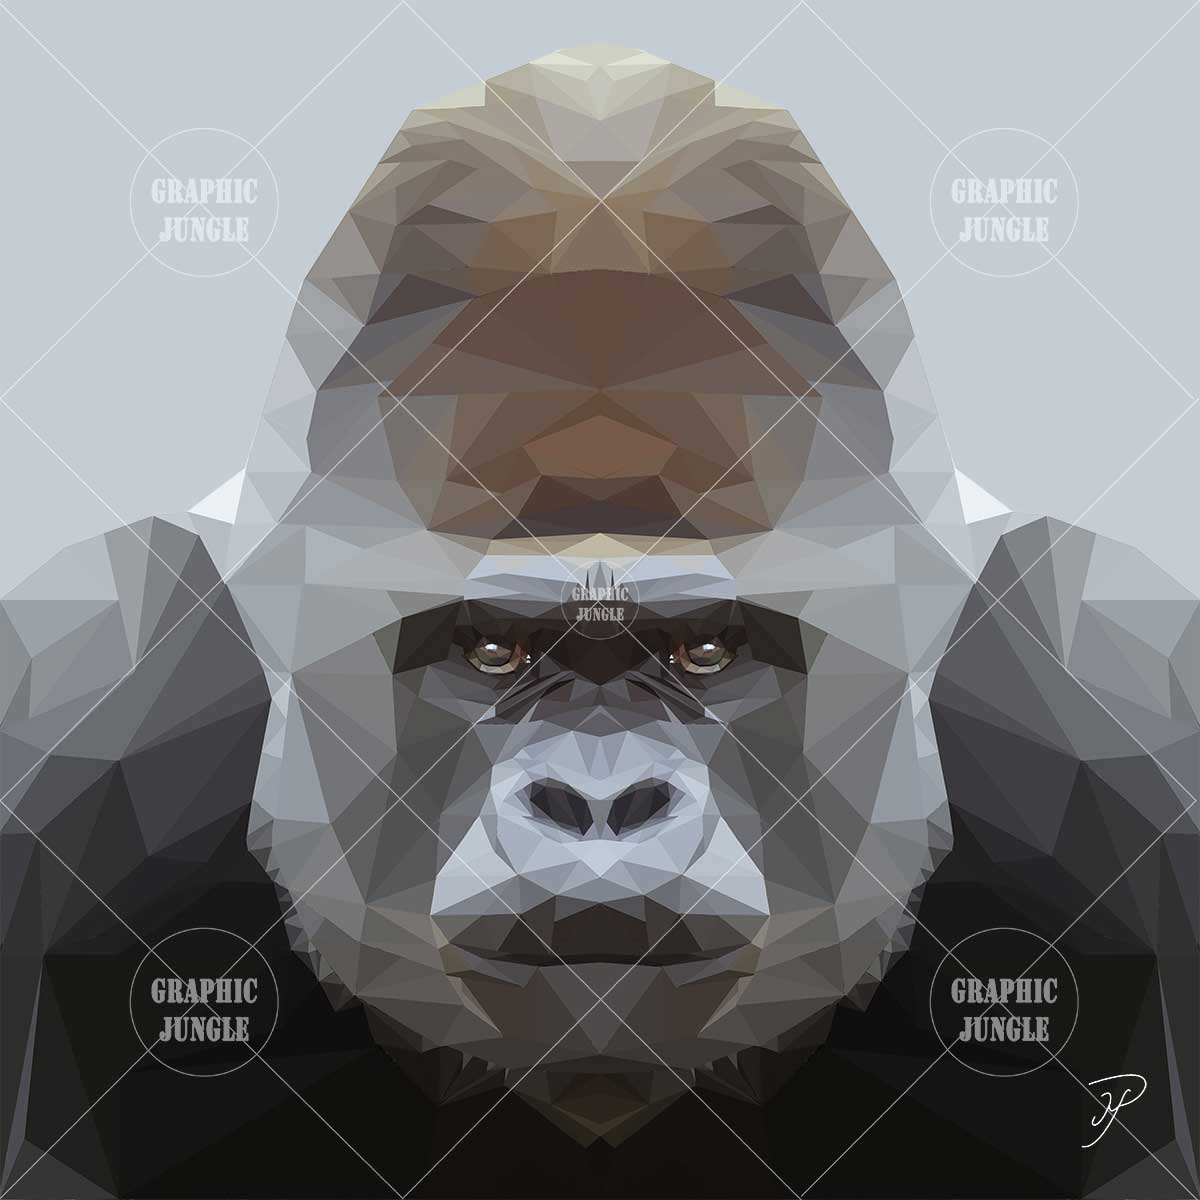 07 GORILLA - Graphic Jungle